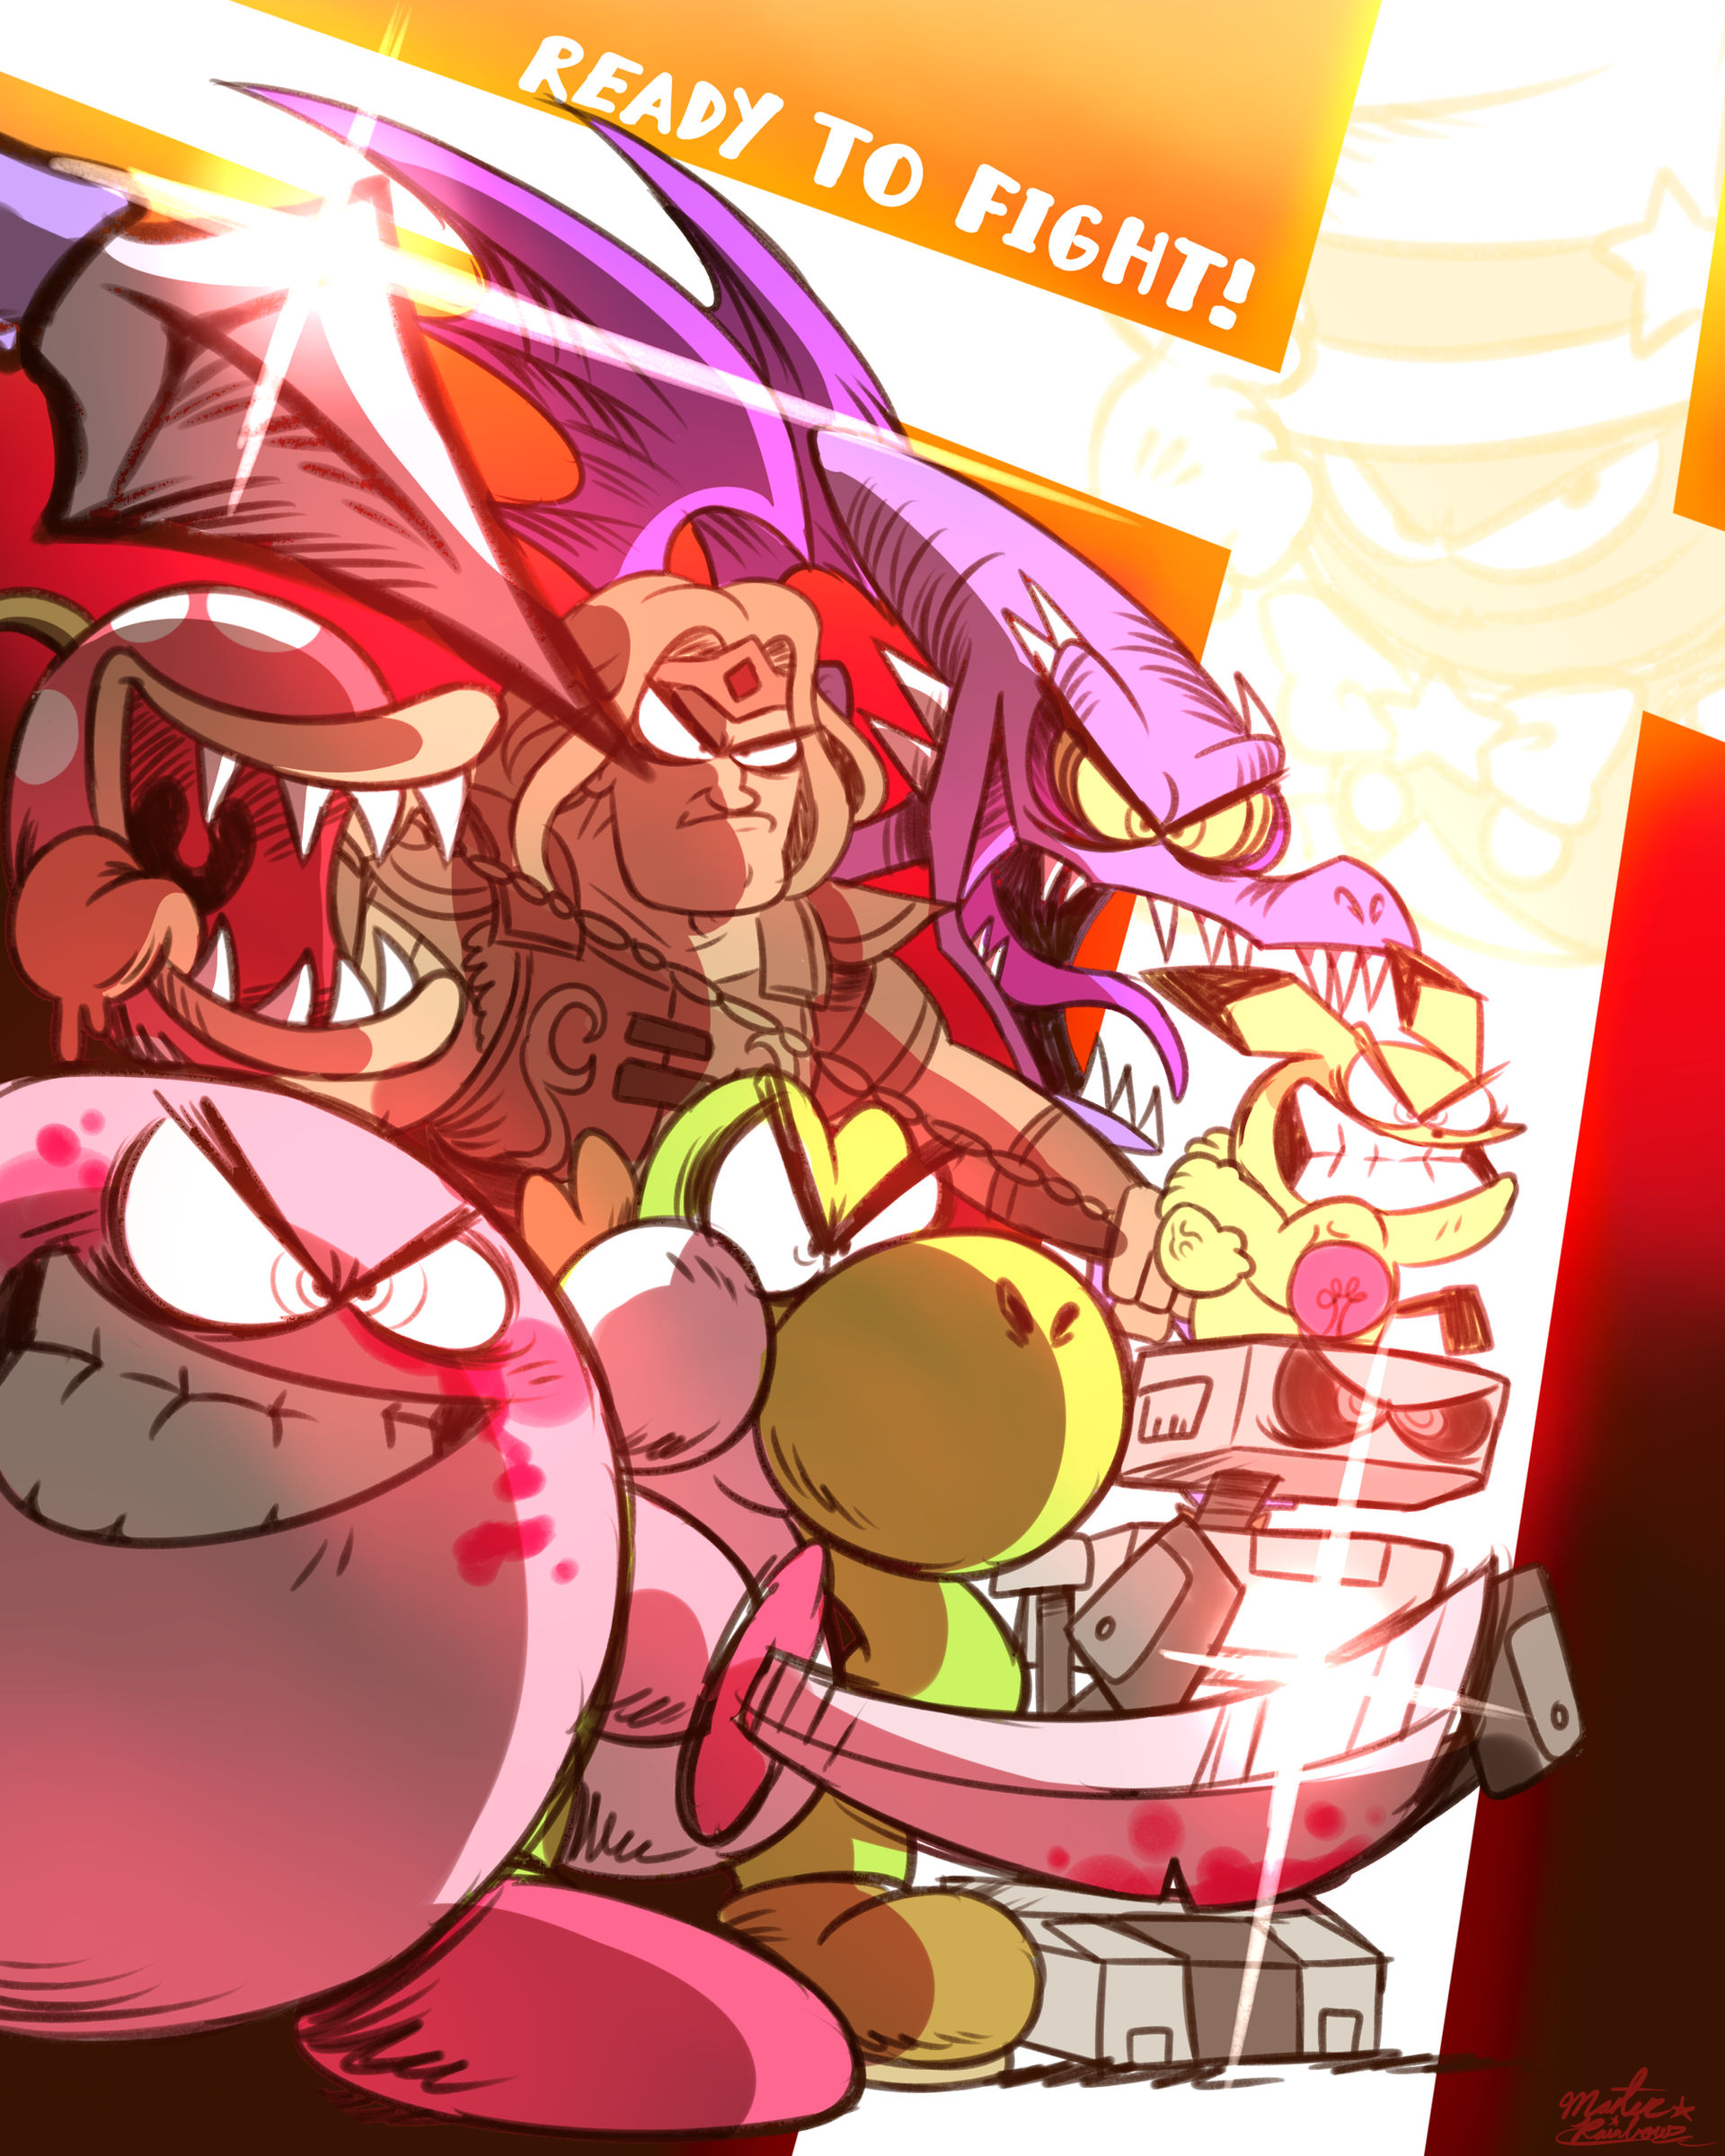 Ready for ULTIMATE! (#DrawYourRosterUltimate)